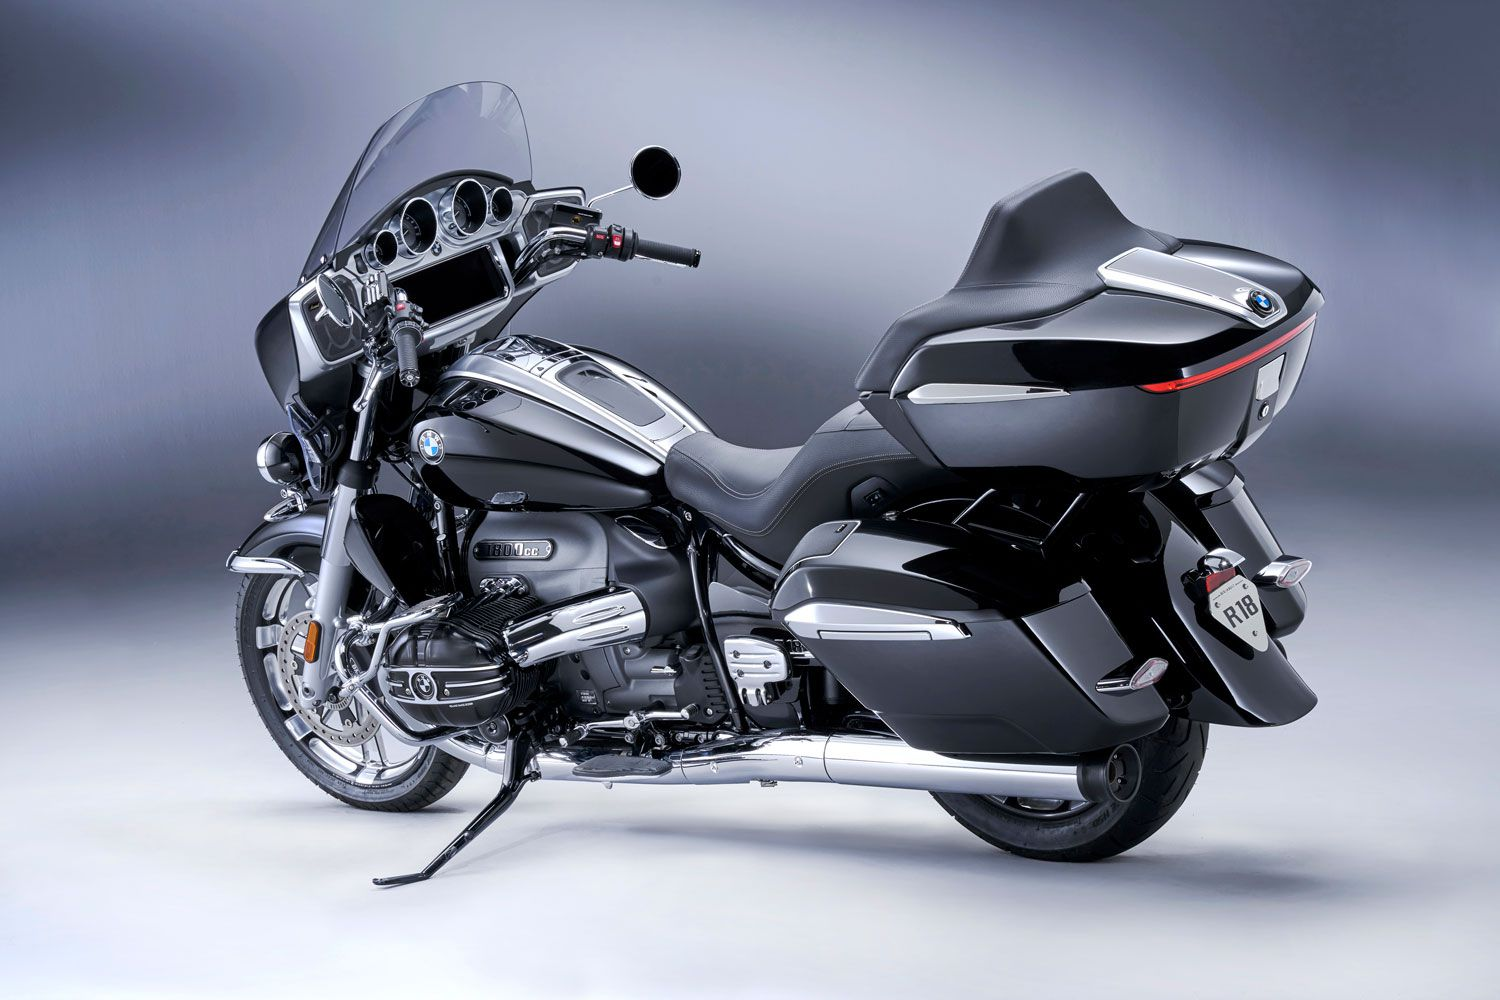 The Transcontinental's top case is decoupled from the rest of the bike to reduce vibration.